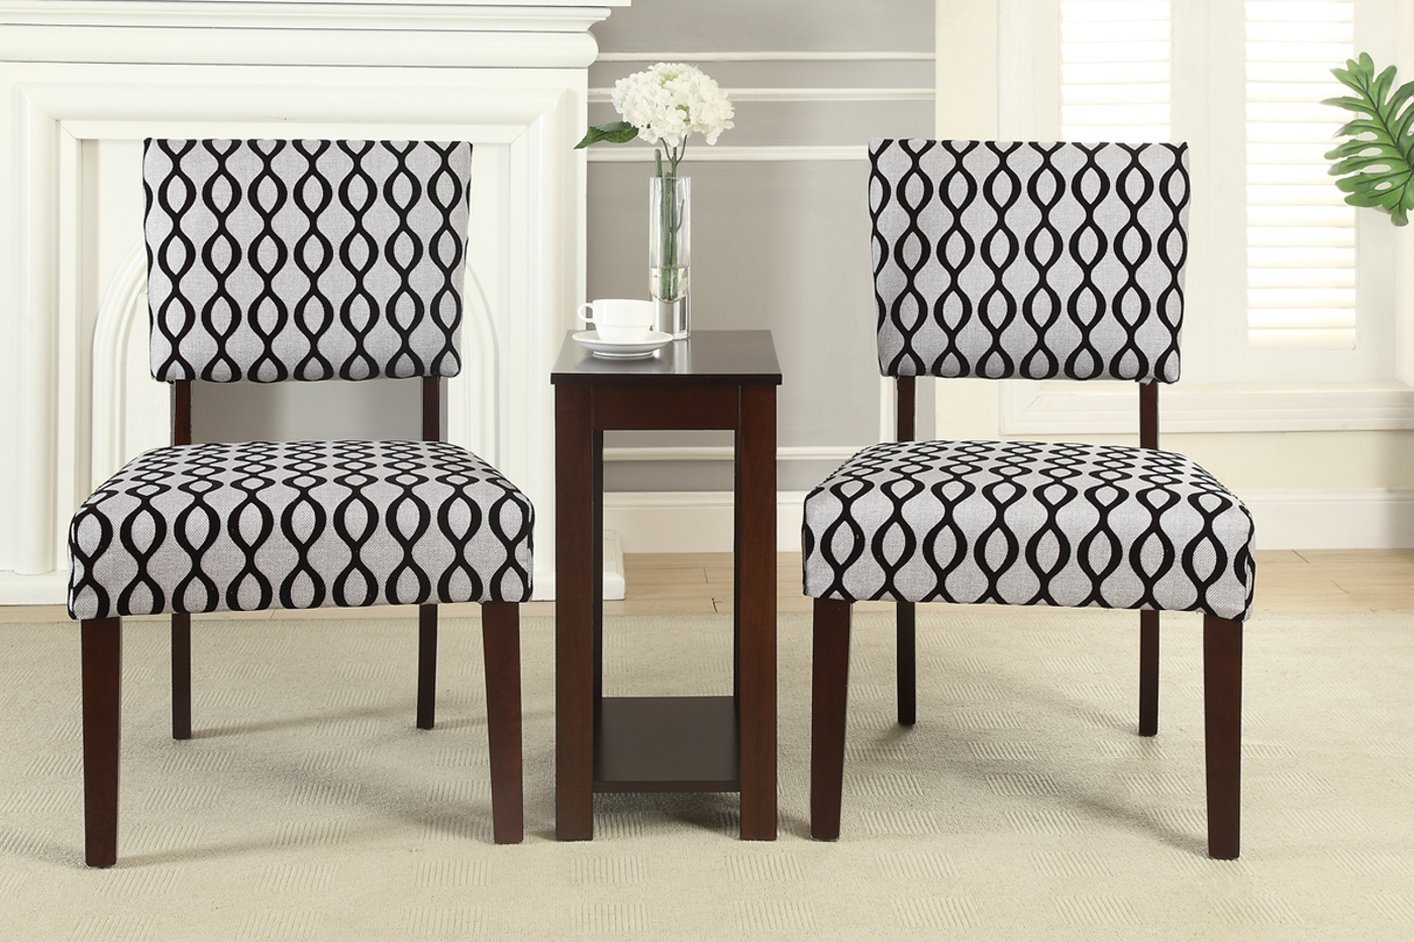 gorgeous accent chair and table set with piece living room wonderful chairs custer contemporary cocktail inch side quatrefoil pier one sofa narrow green quilted fall runners over